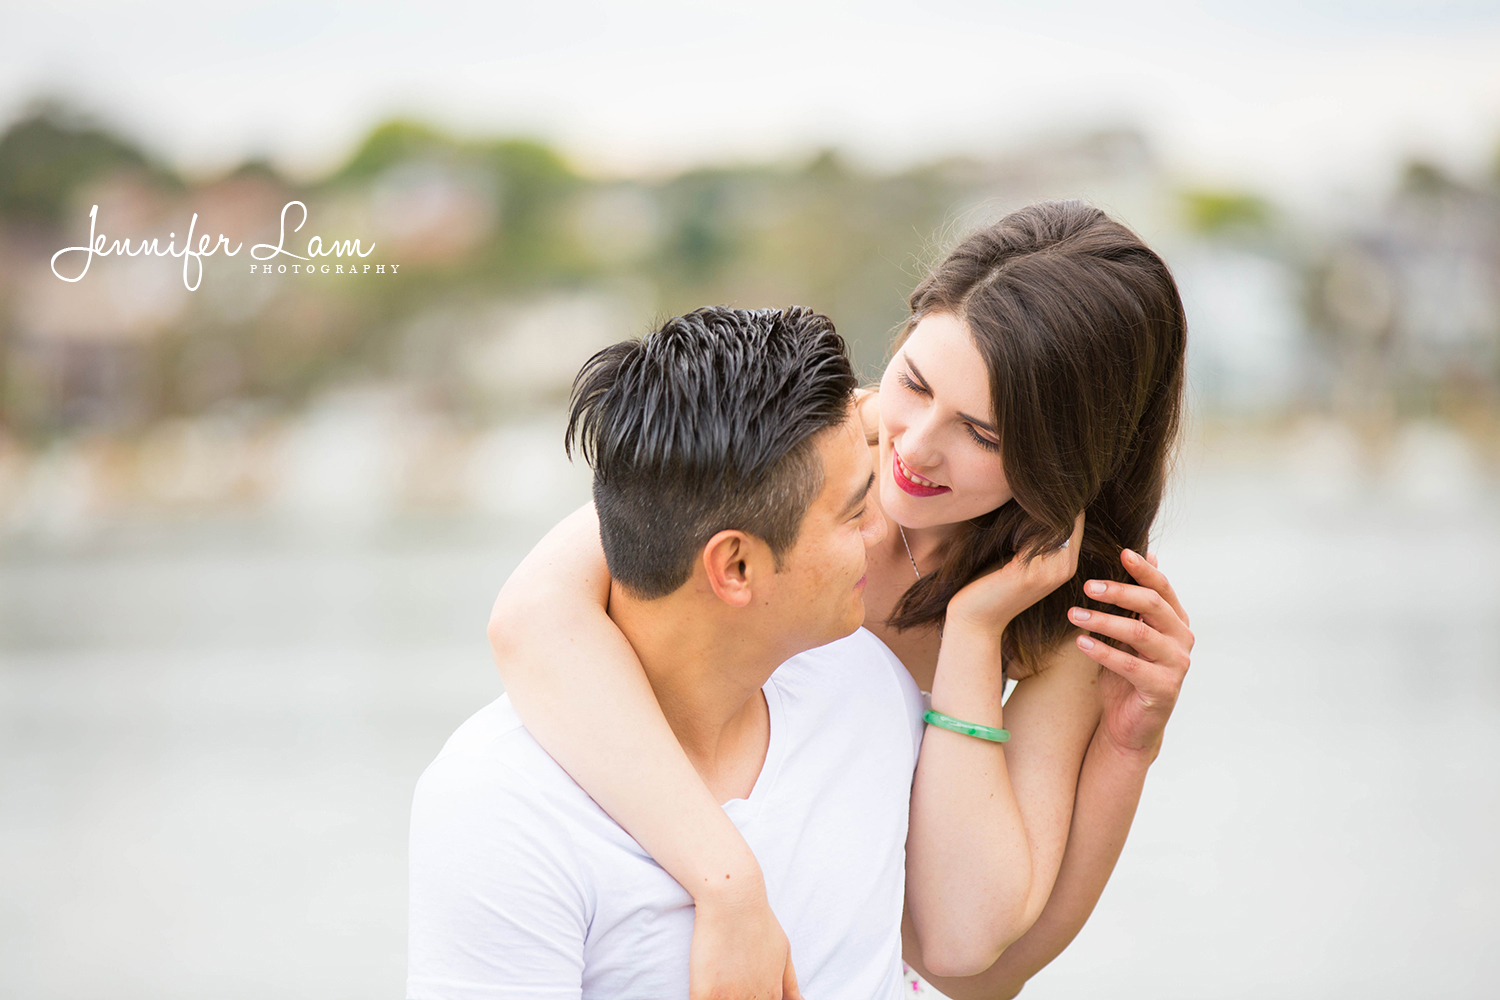 Sydney Pre-Wedding Photography - Jennifer Lam Photography (25).jpg